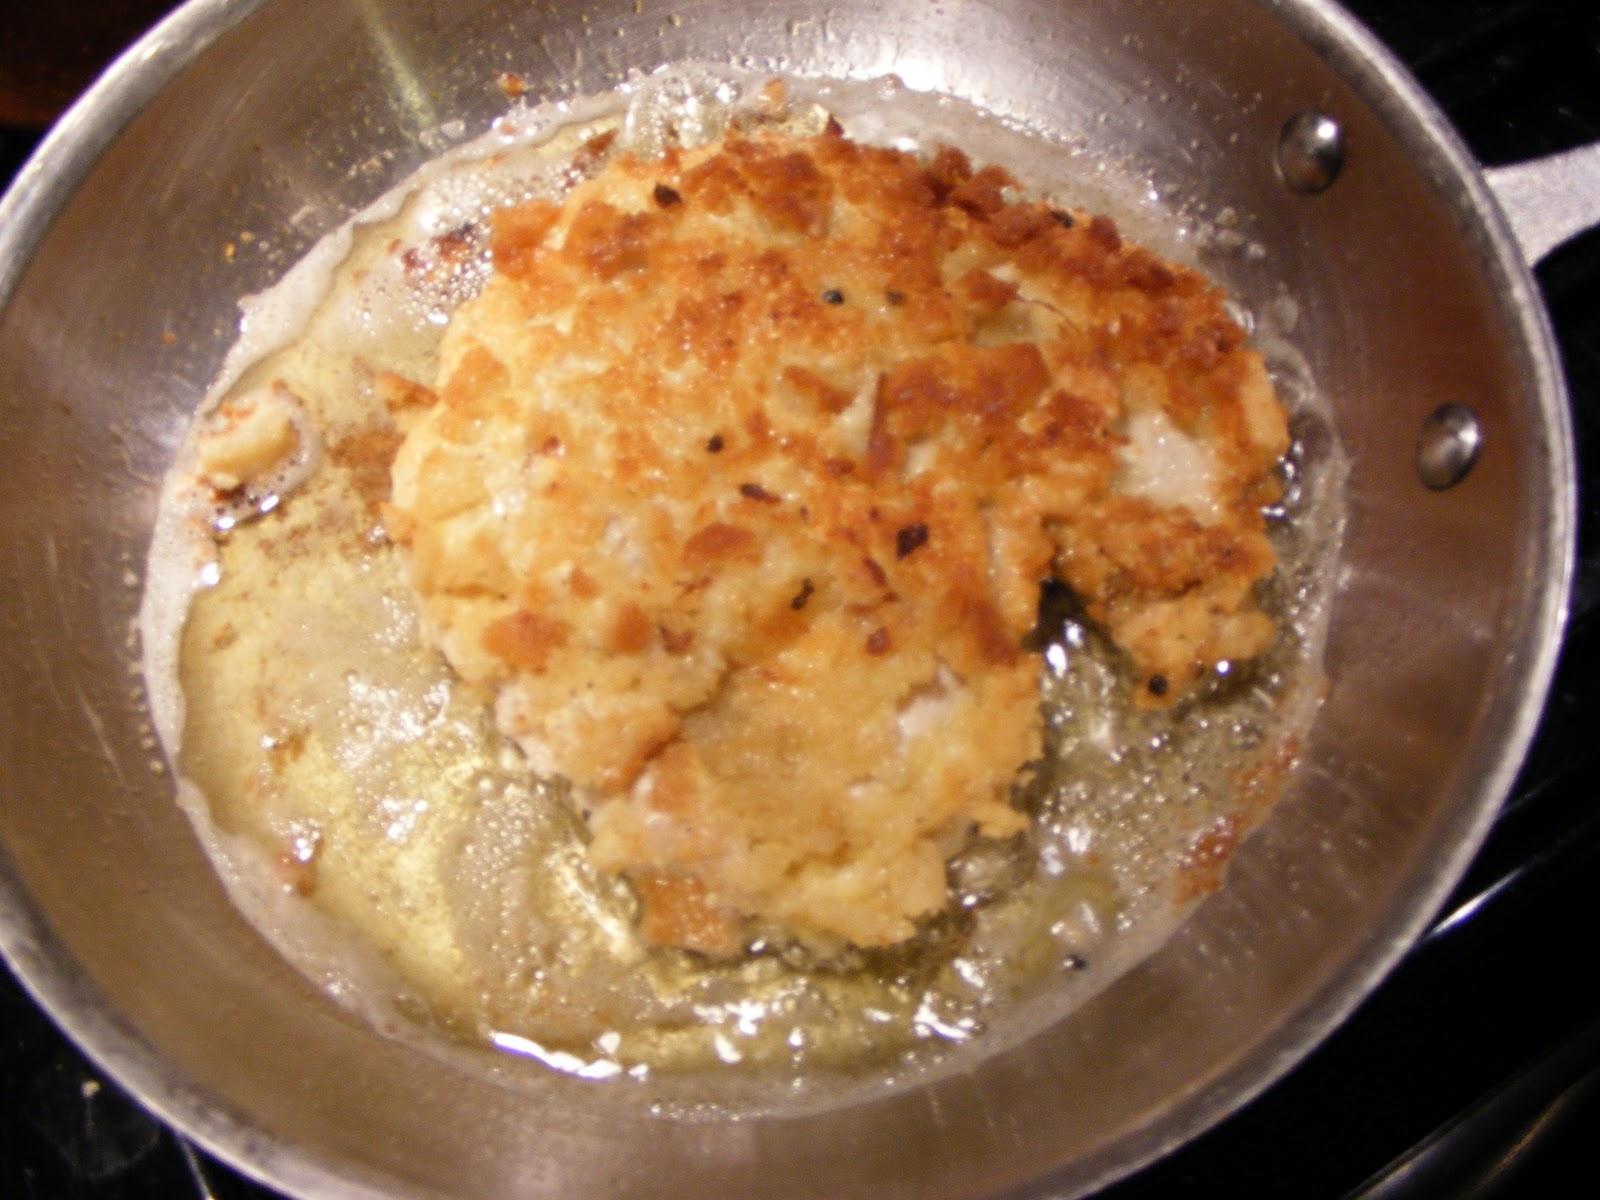 Stone Hill Farm: Chicken Cutlets with Lemon and Caper Sauce